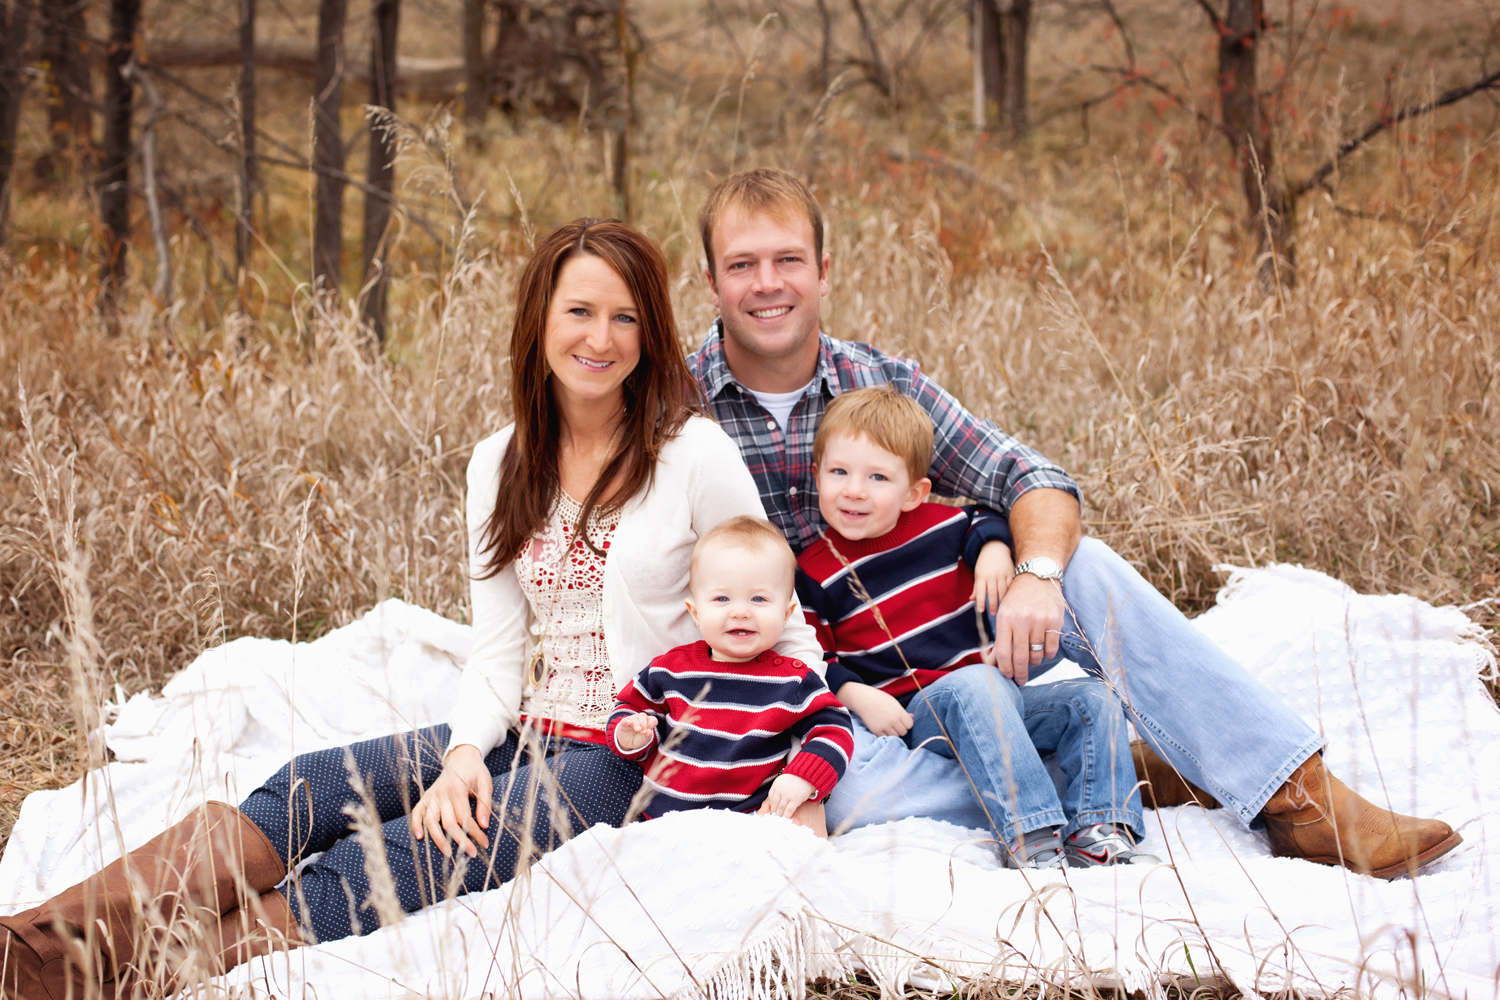 Russtanna_Photography_kearney_nebraska_natural_light_photographer_newborn_senior_family_engagement  (7).jpg